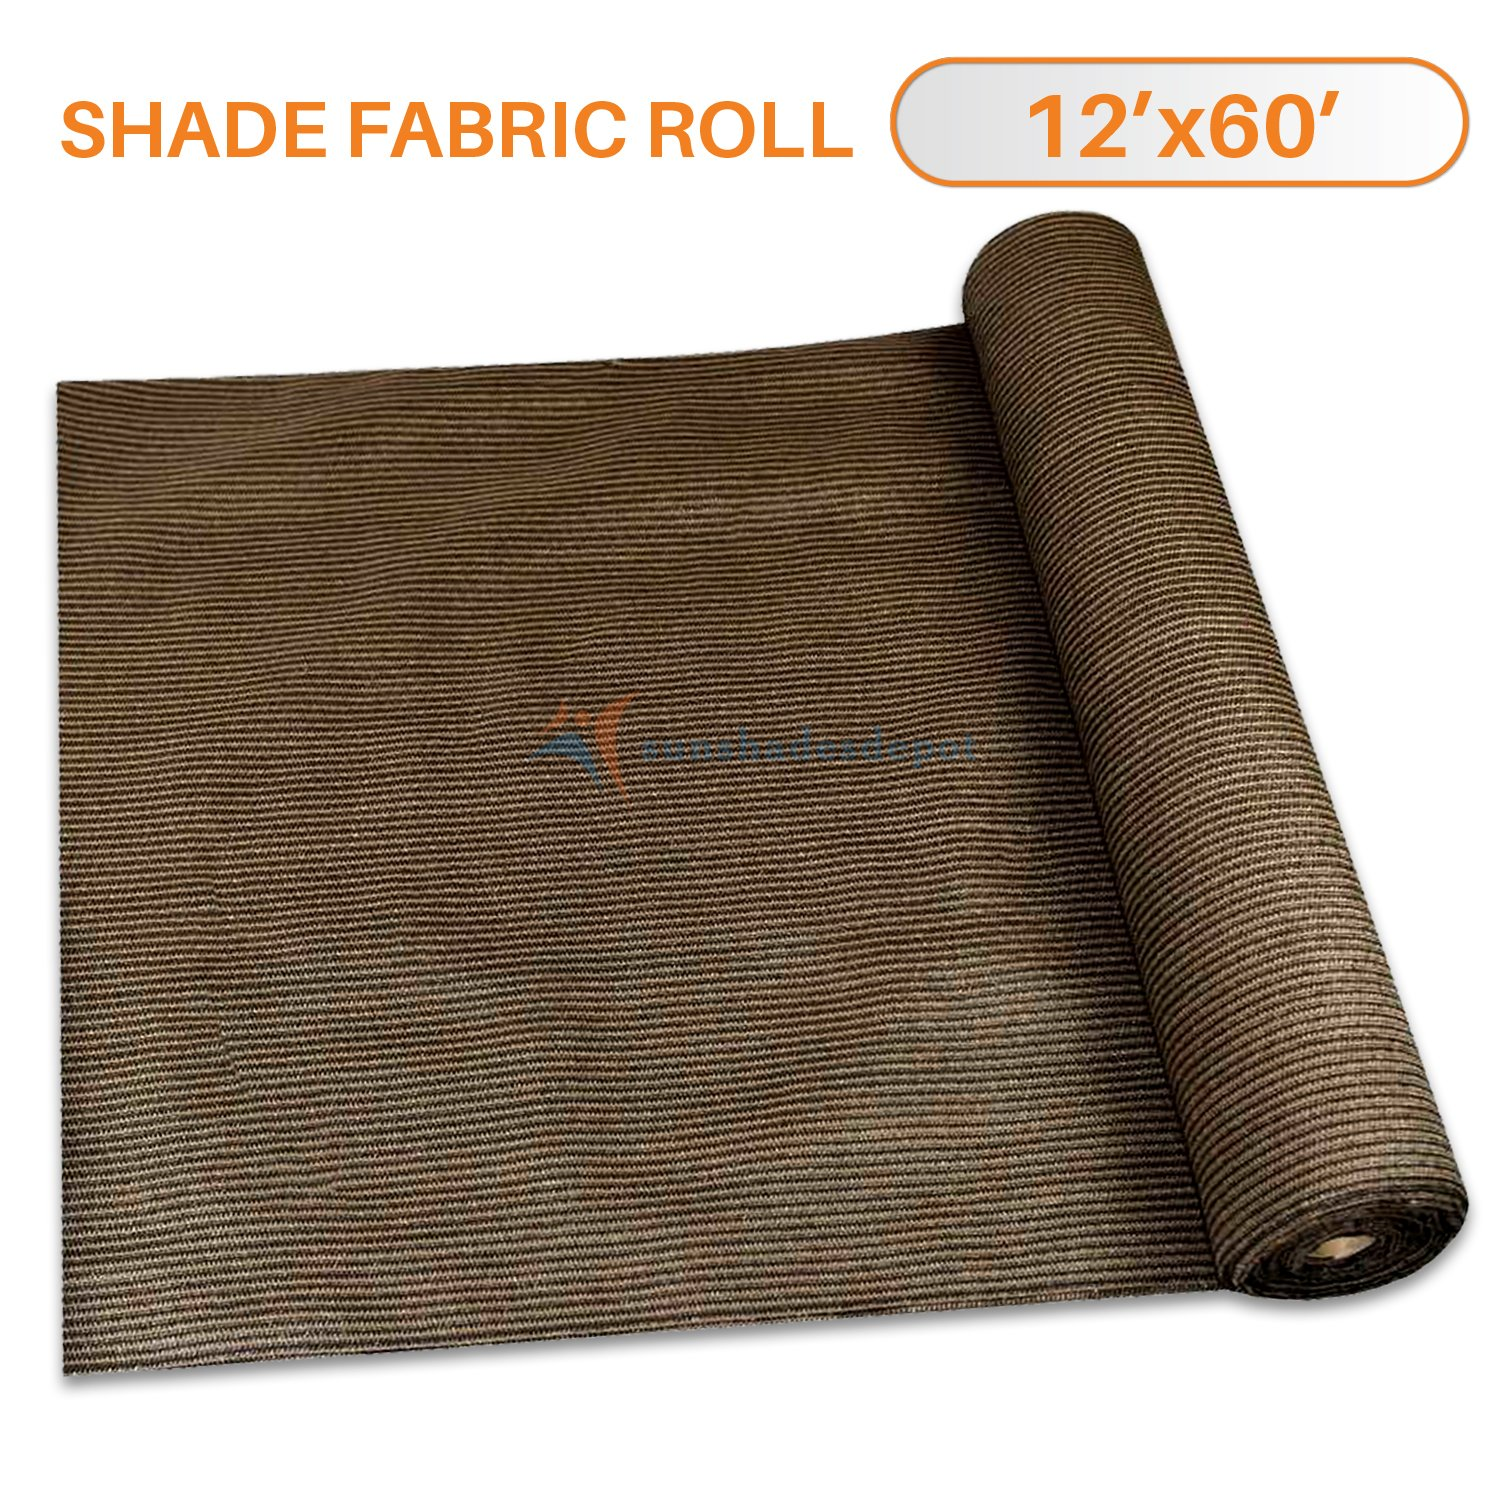 TANG Sunshades Depot 12 x60 Shade Cloth 180 GSM HDPE Brown Fabric Roll Up to 95 Blockage UV Resistant Mesh Net for Outdoor Backyard Garden Plant Barn Greenhouse